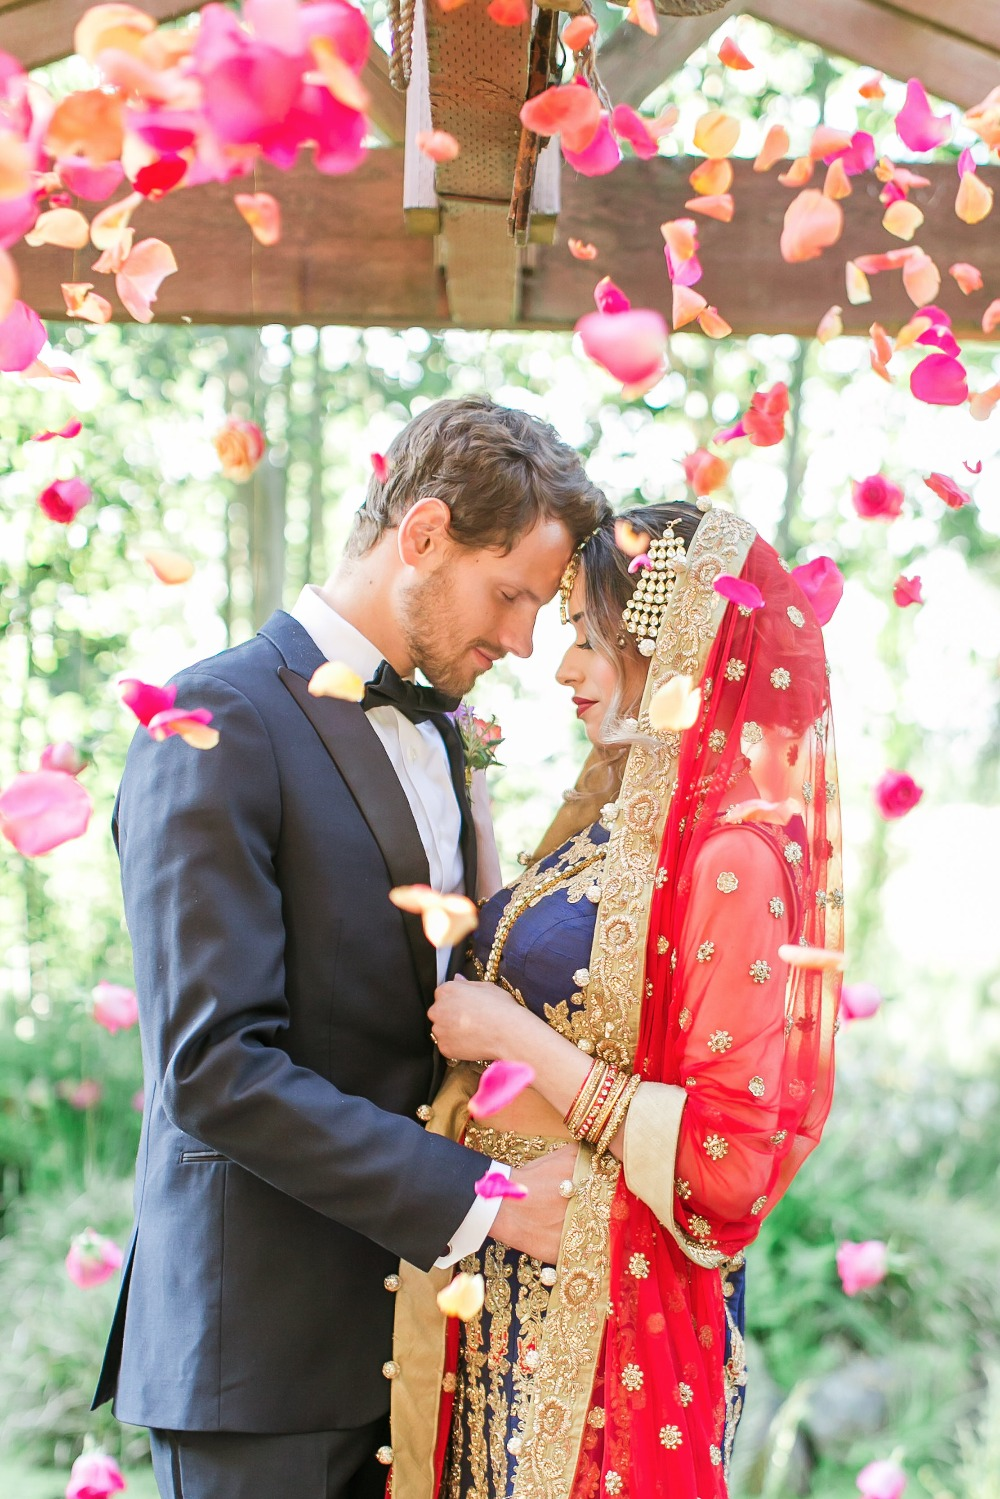 Gorgeous ceremony flower toss